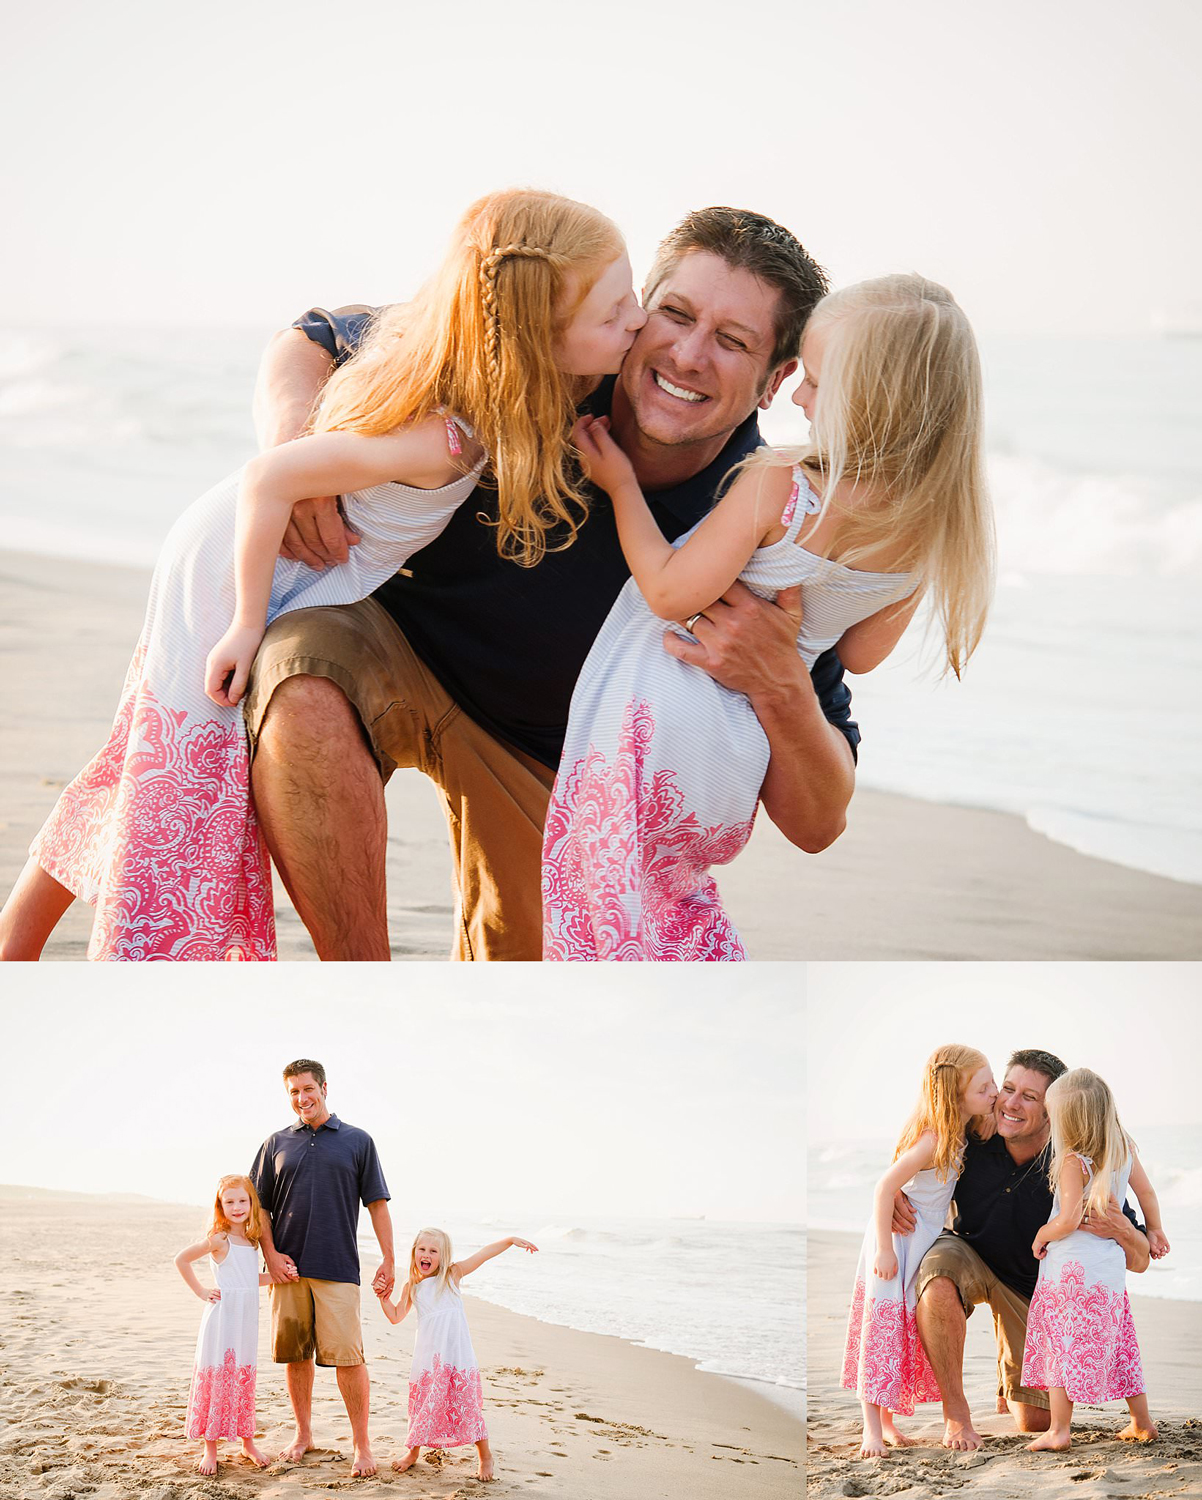 candid-lifestyle-family-photos-at-the-beach-va-beach-photographer-melissa-bliss-photography.jpg